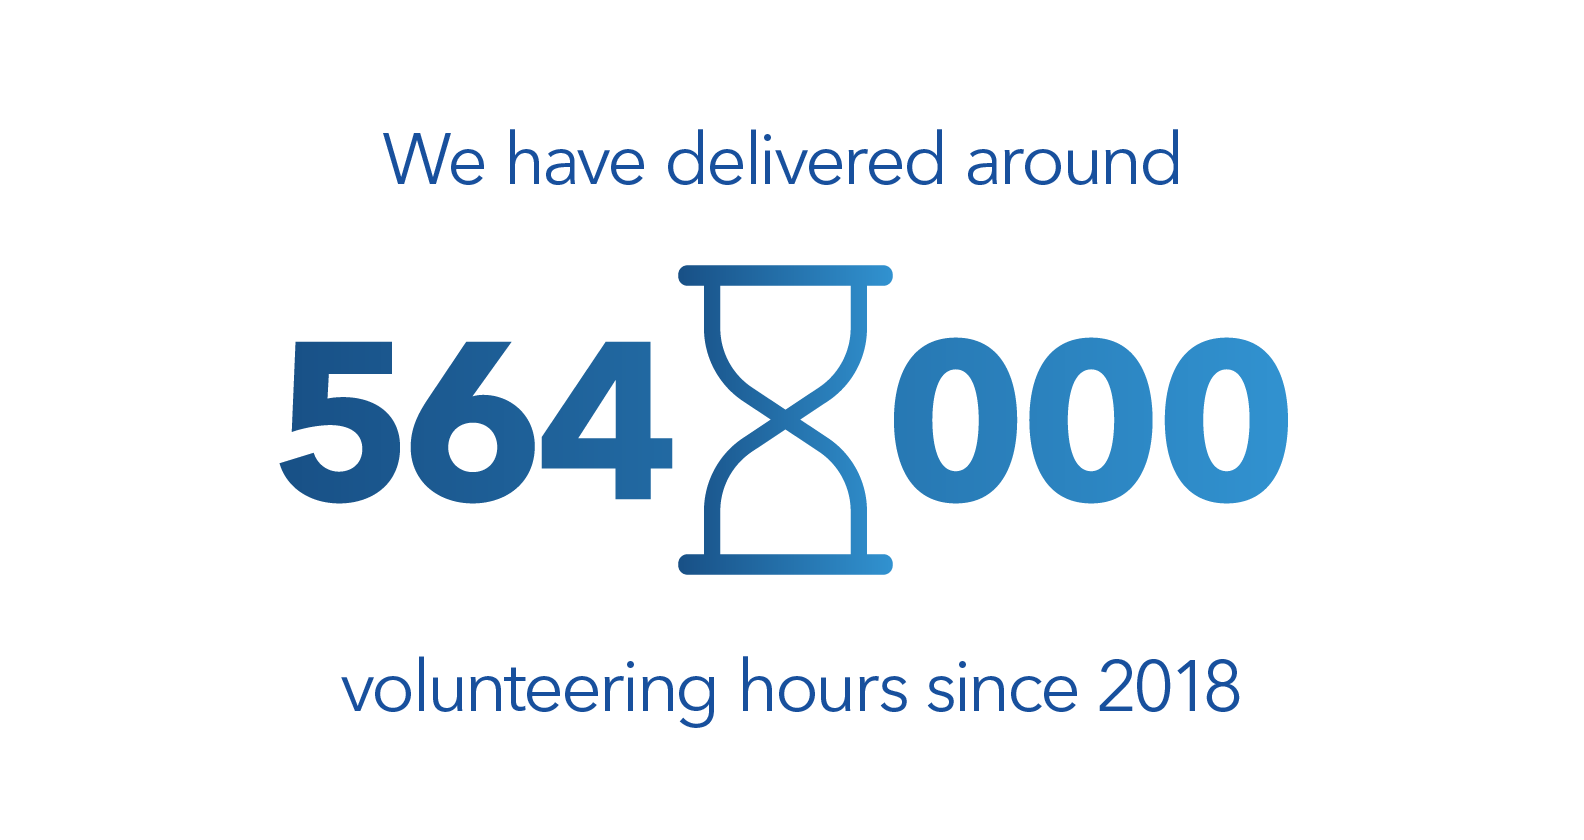 We've made a commitment to deliver 564,000 volunteering hours by the end of 2020